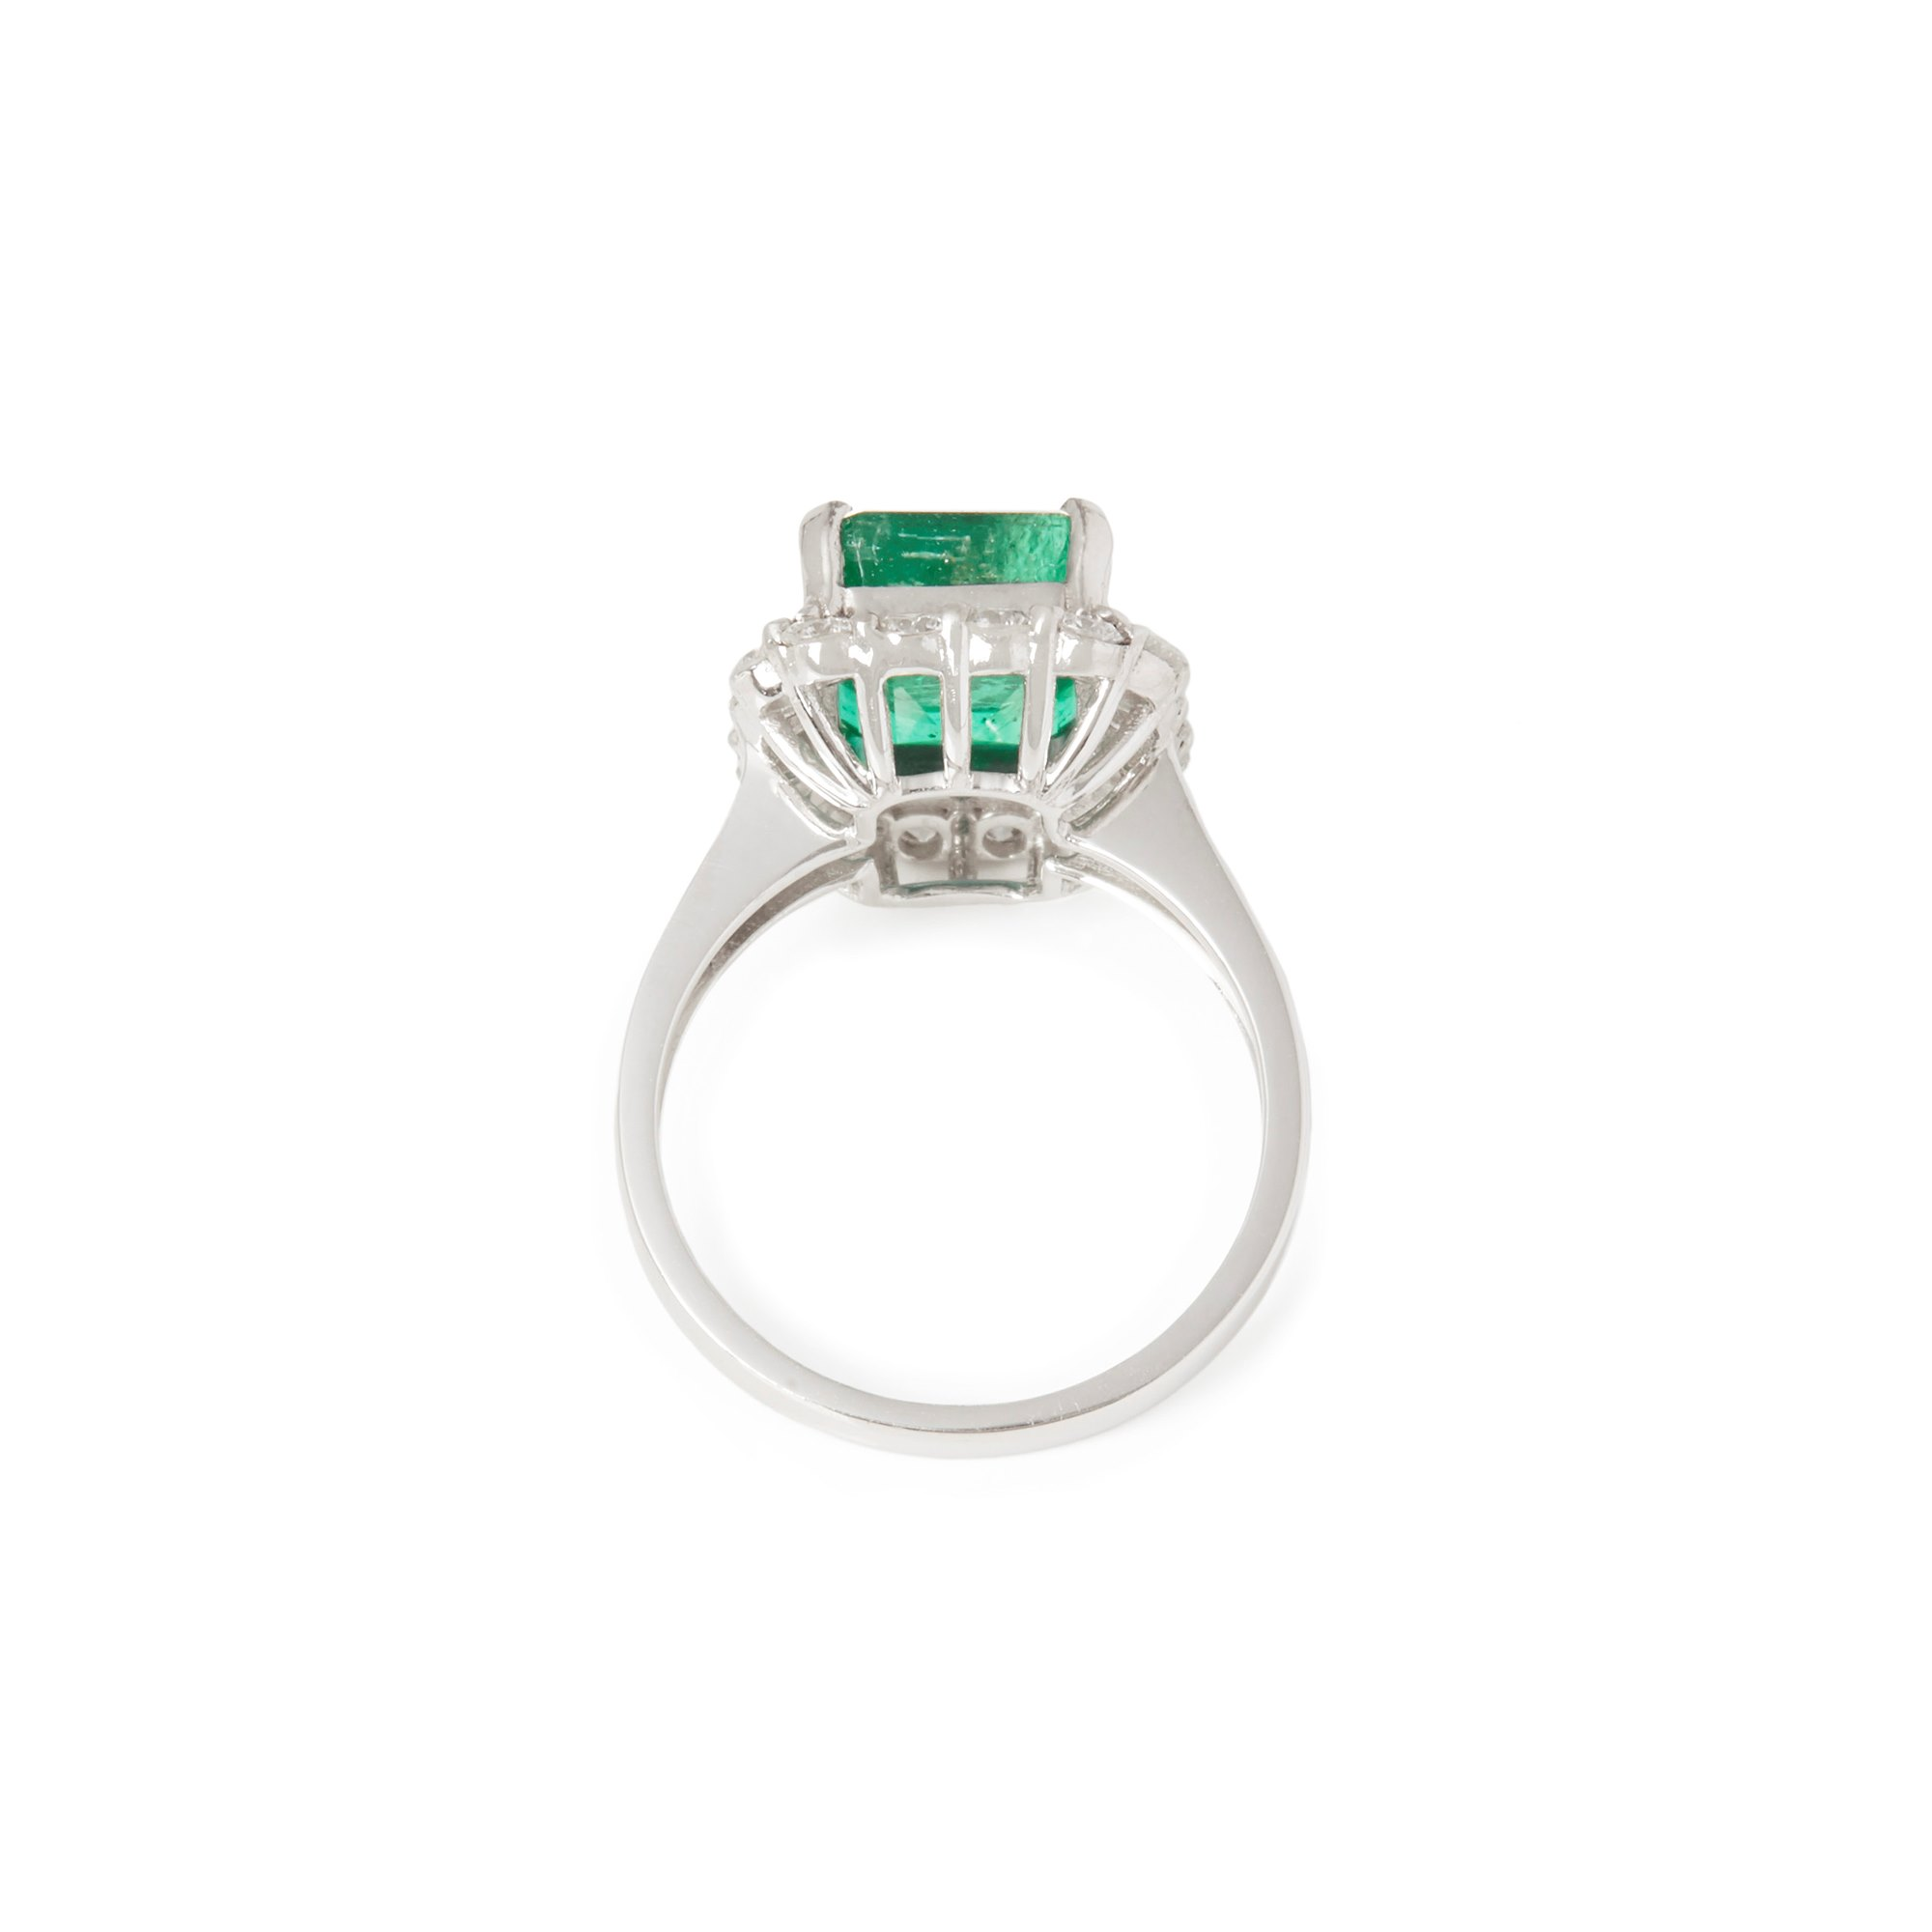 David Jerome Certified 4.58ct Columbian Emerald Cut Emerald and Diamond 18ct gold Ring